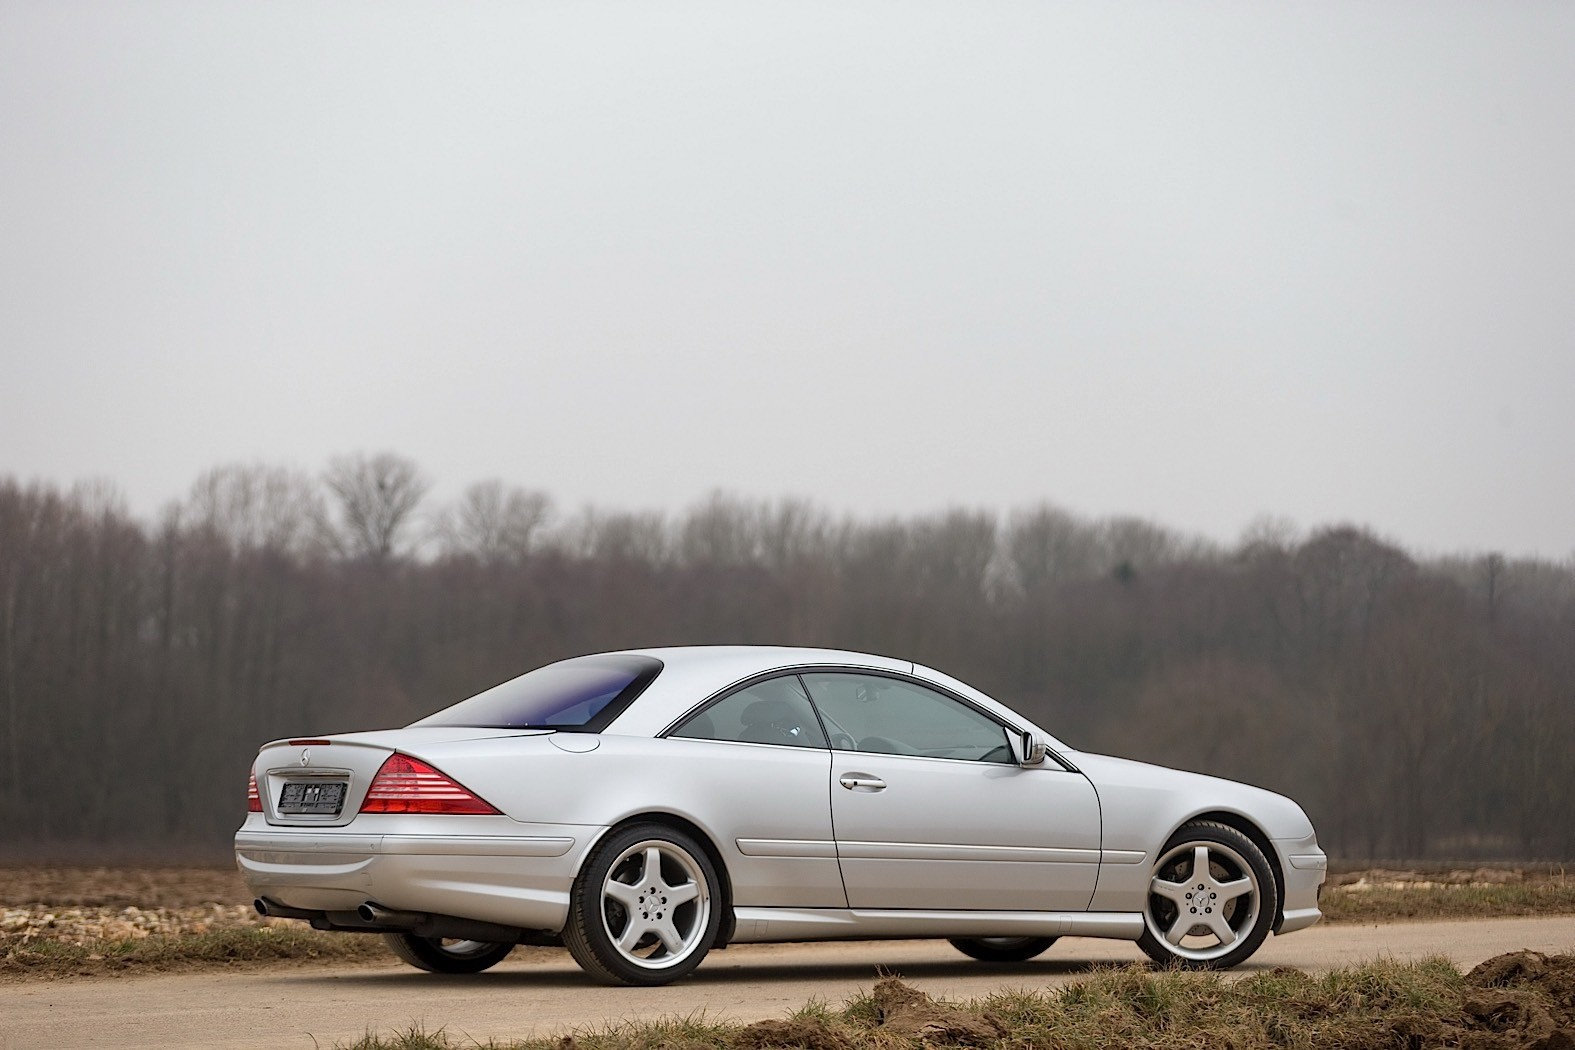 Coolest obscure mercedes amg models in history autoevolution for Mercedes benz model history